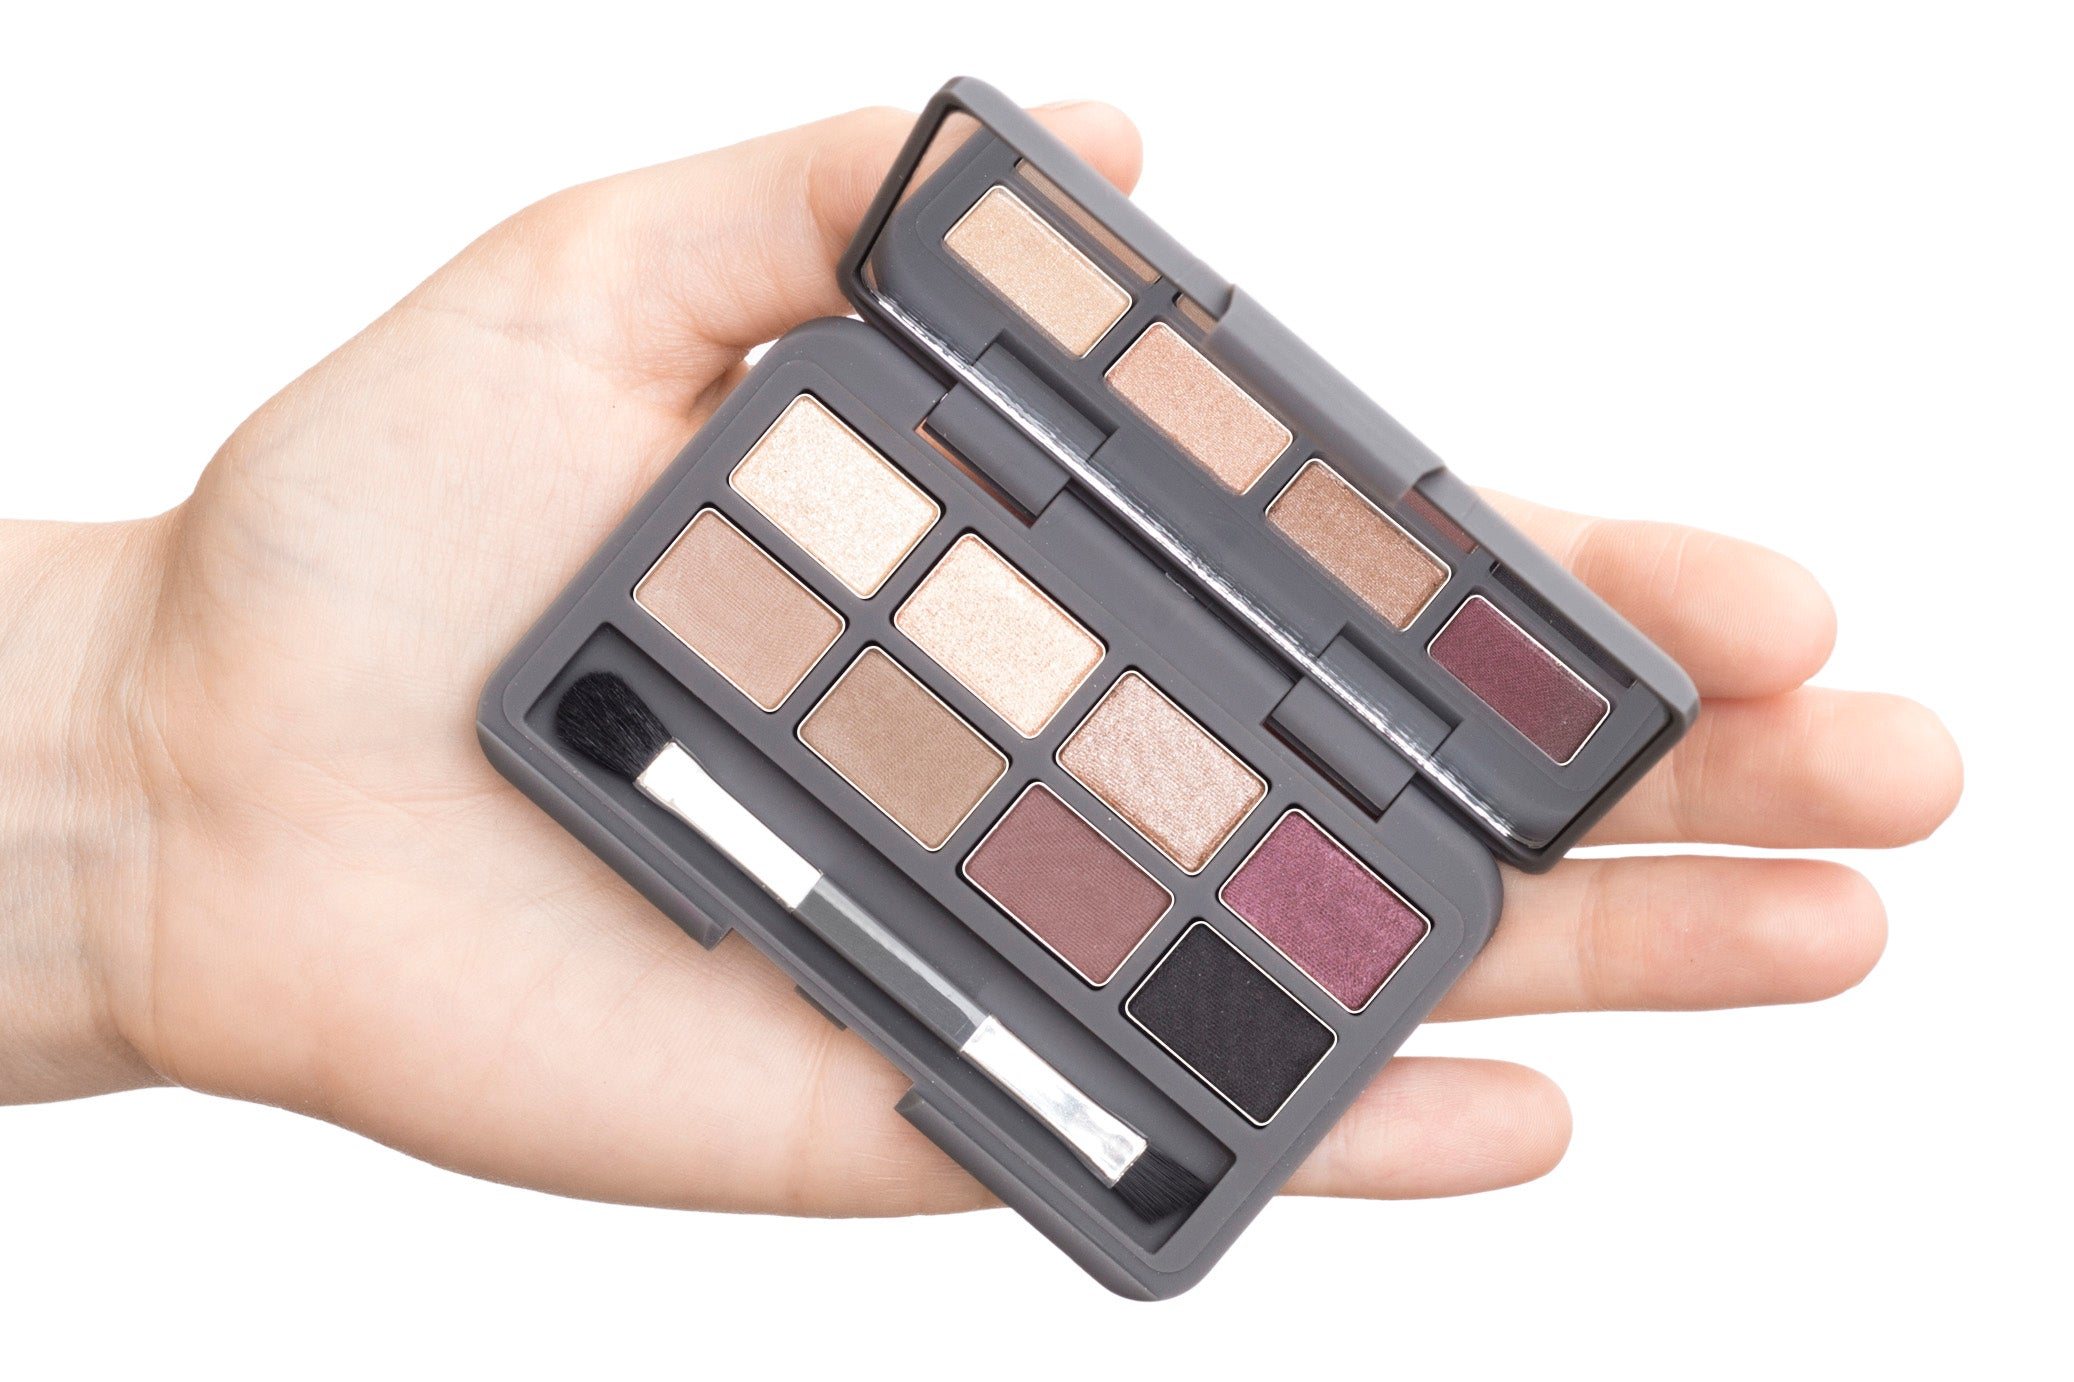 Stowaway Eye Palette balanced on a hand